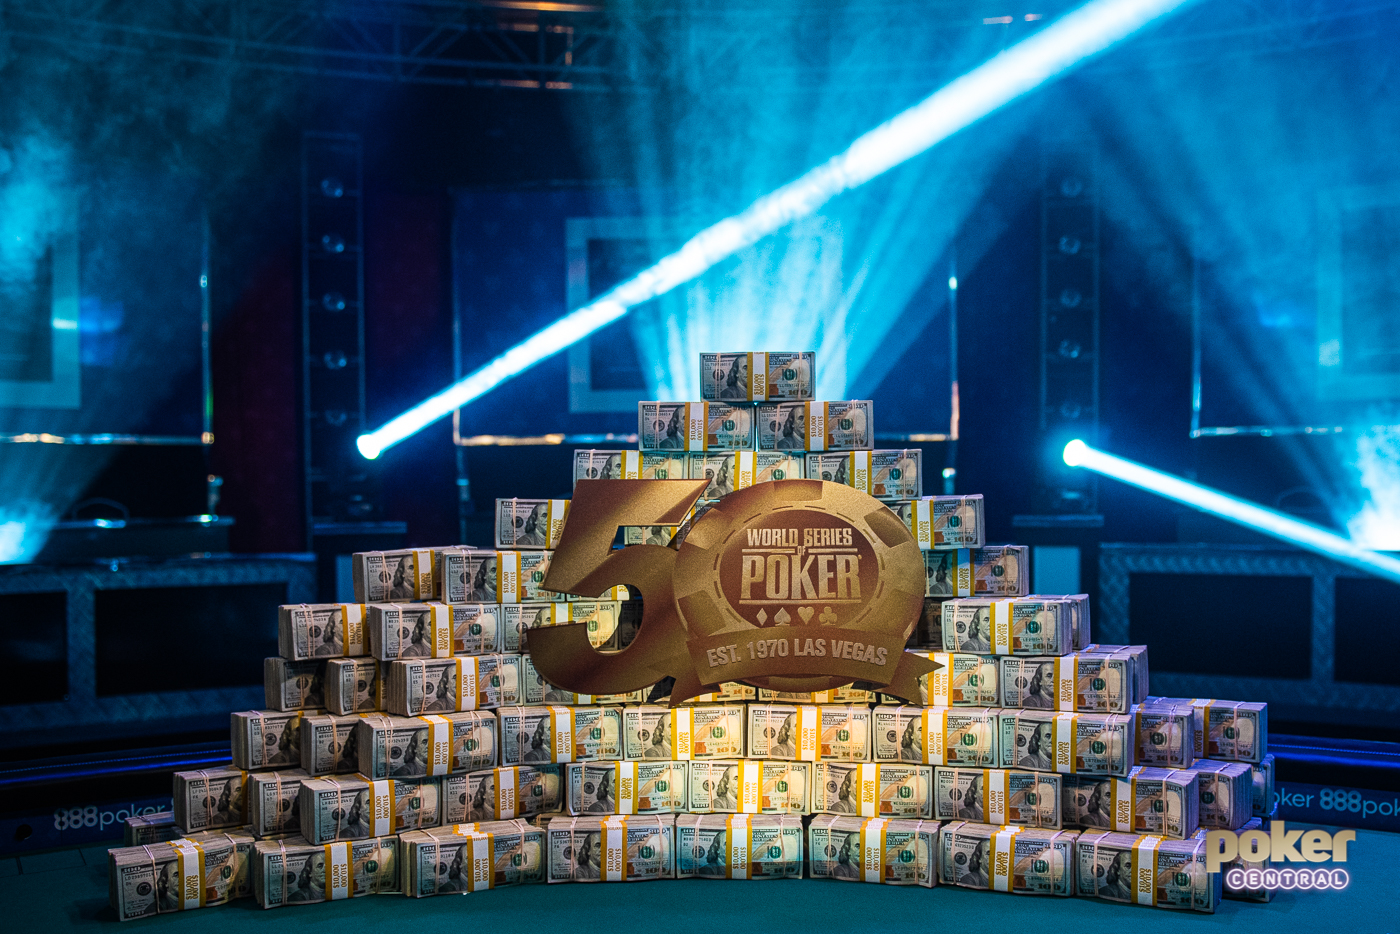 The biggest payout in poker awaits the winner of the 2019 World Series of Poker Main Event.